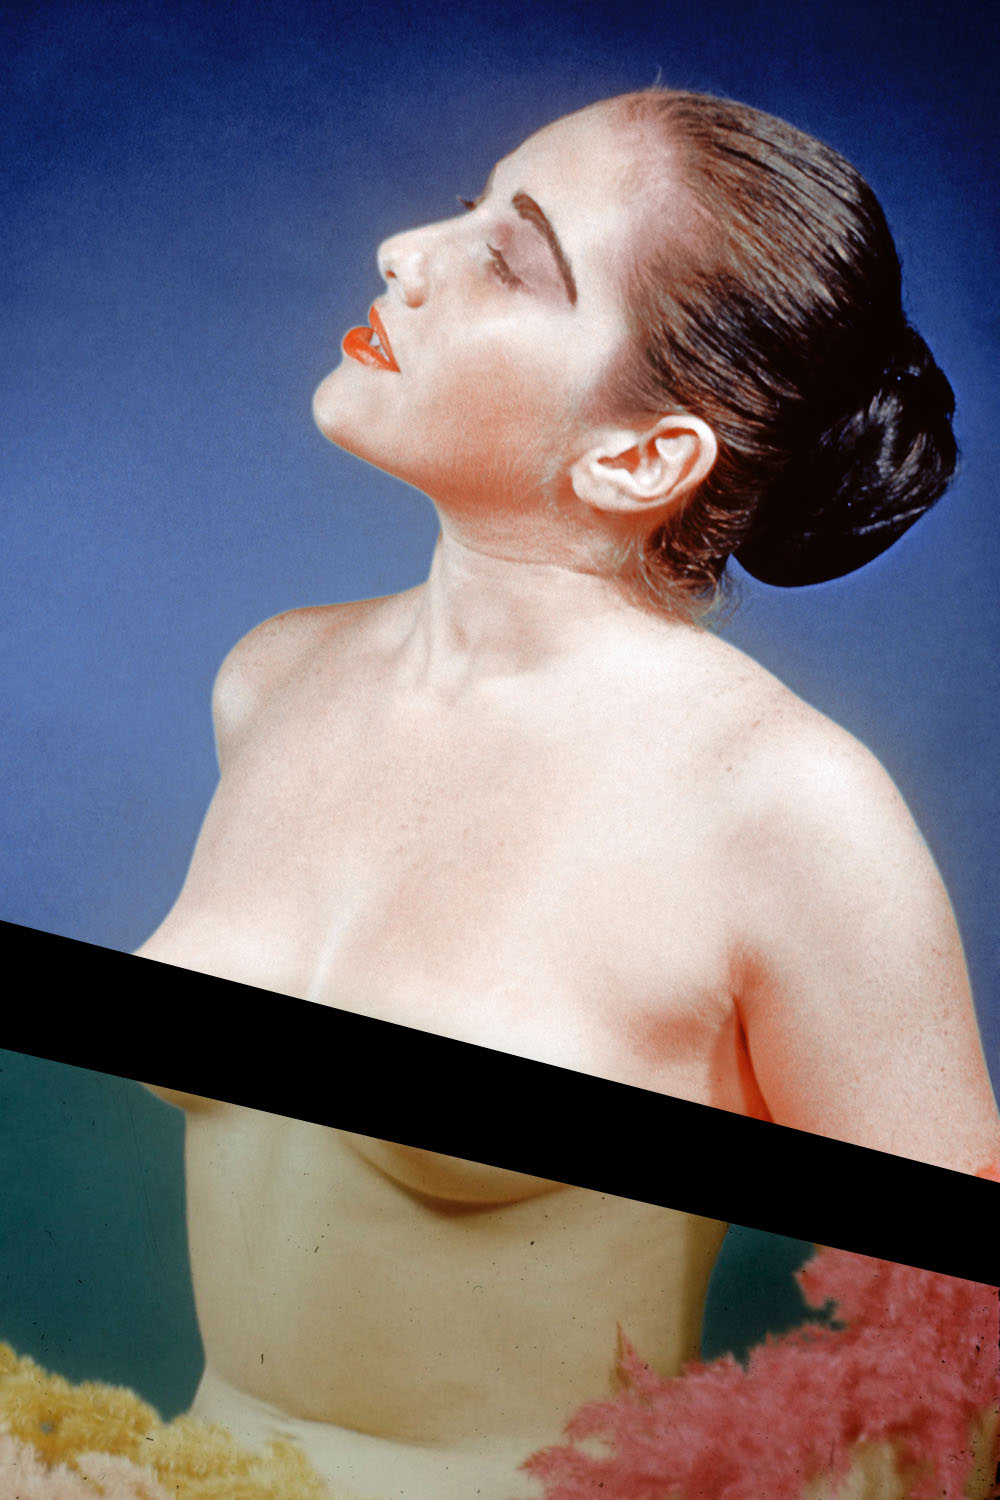 1950s-era pinup of a topless woman posing against a blue background.